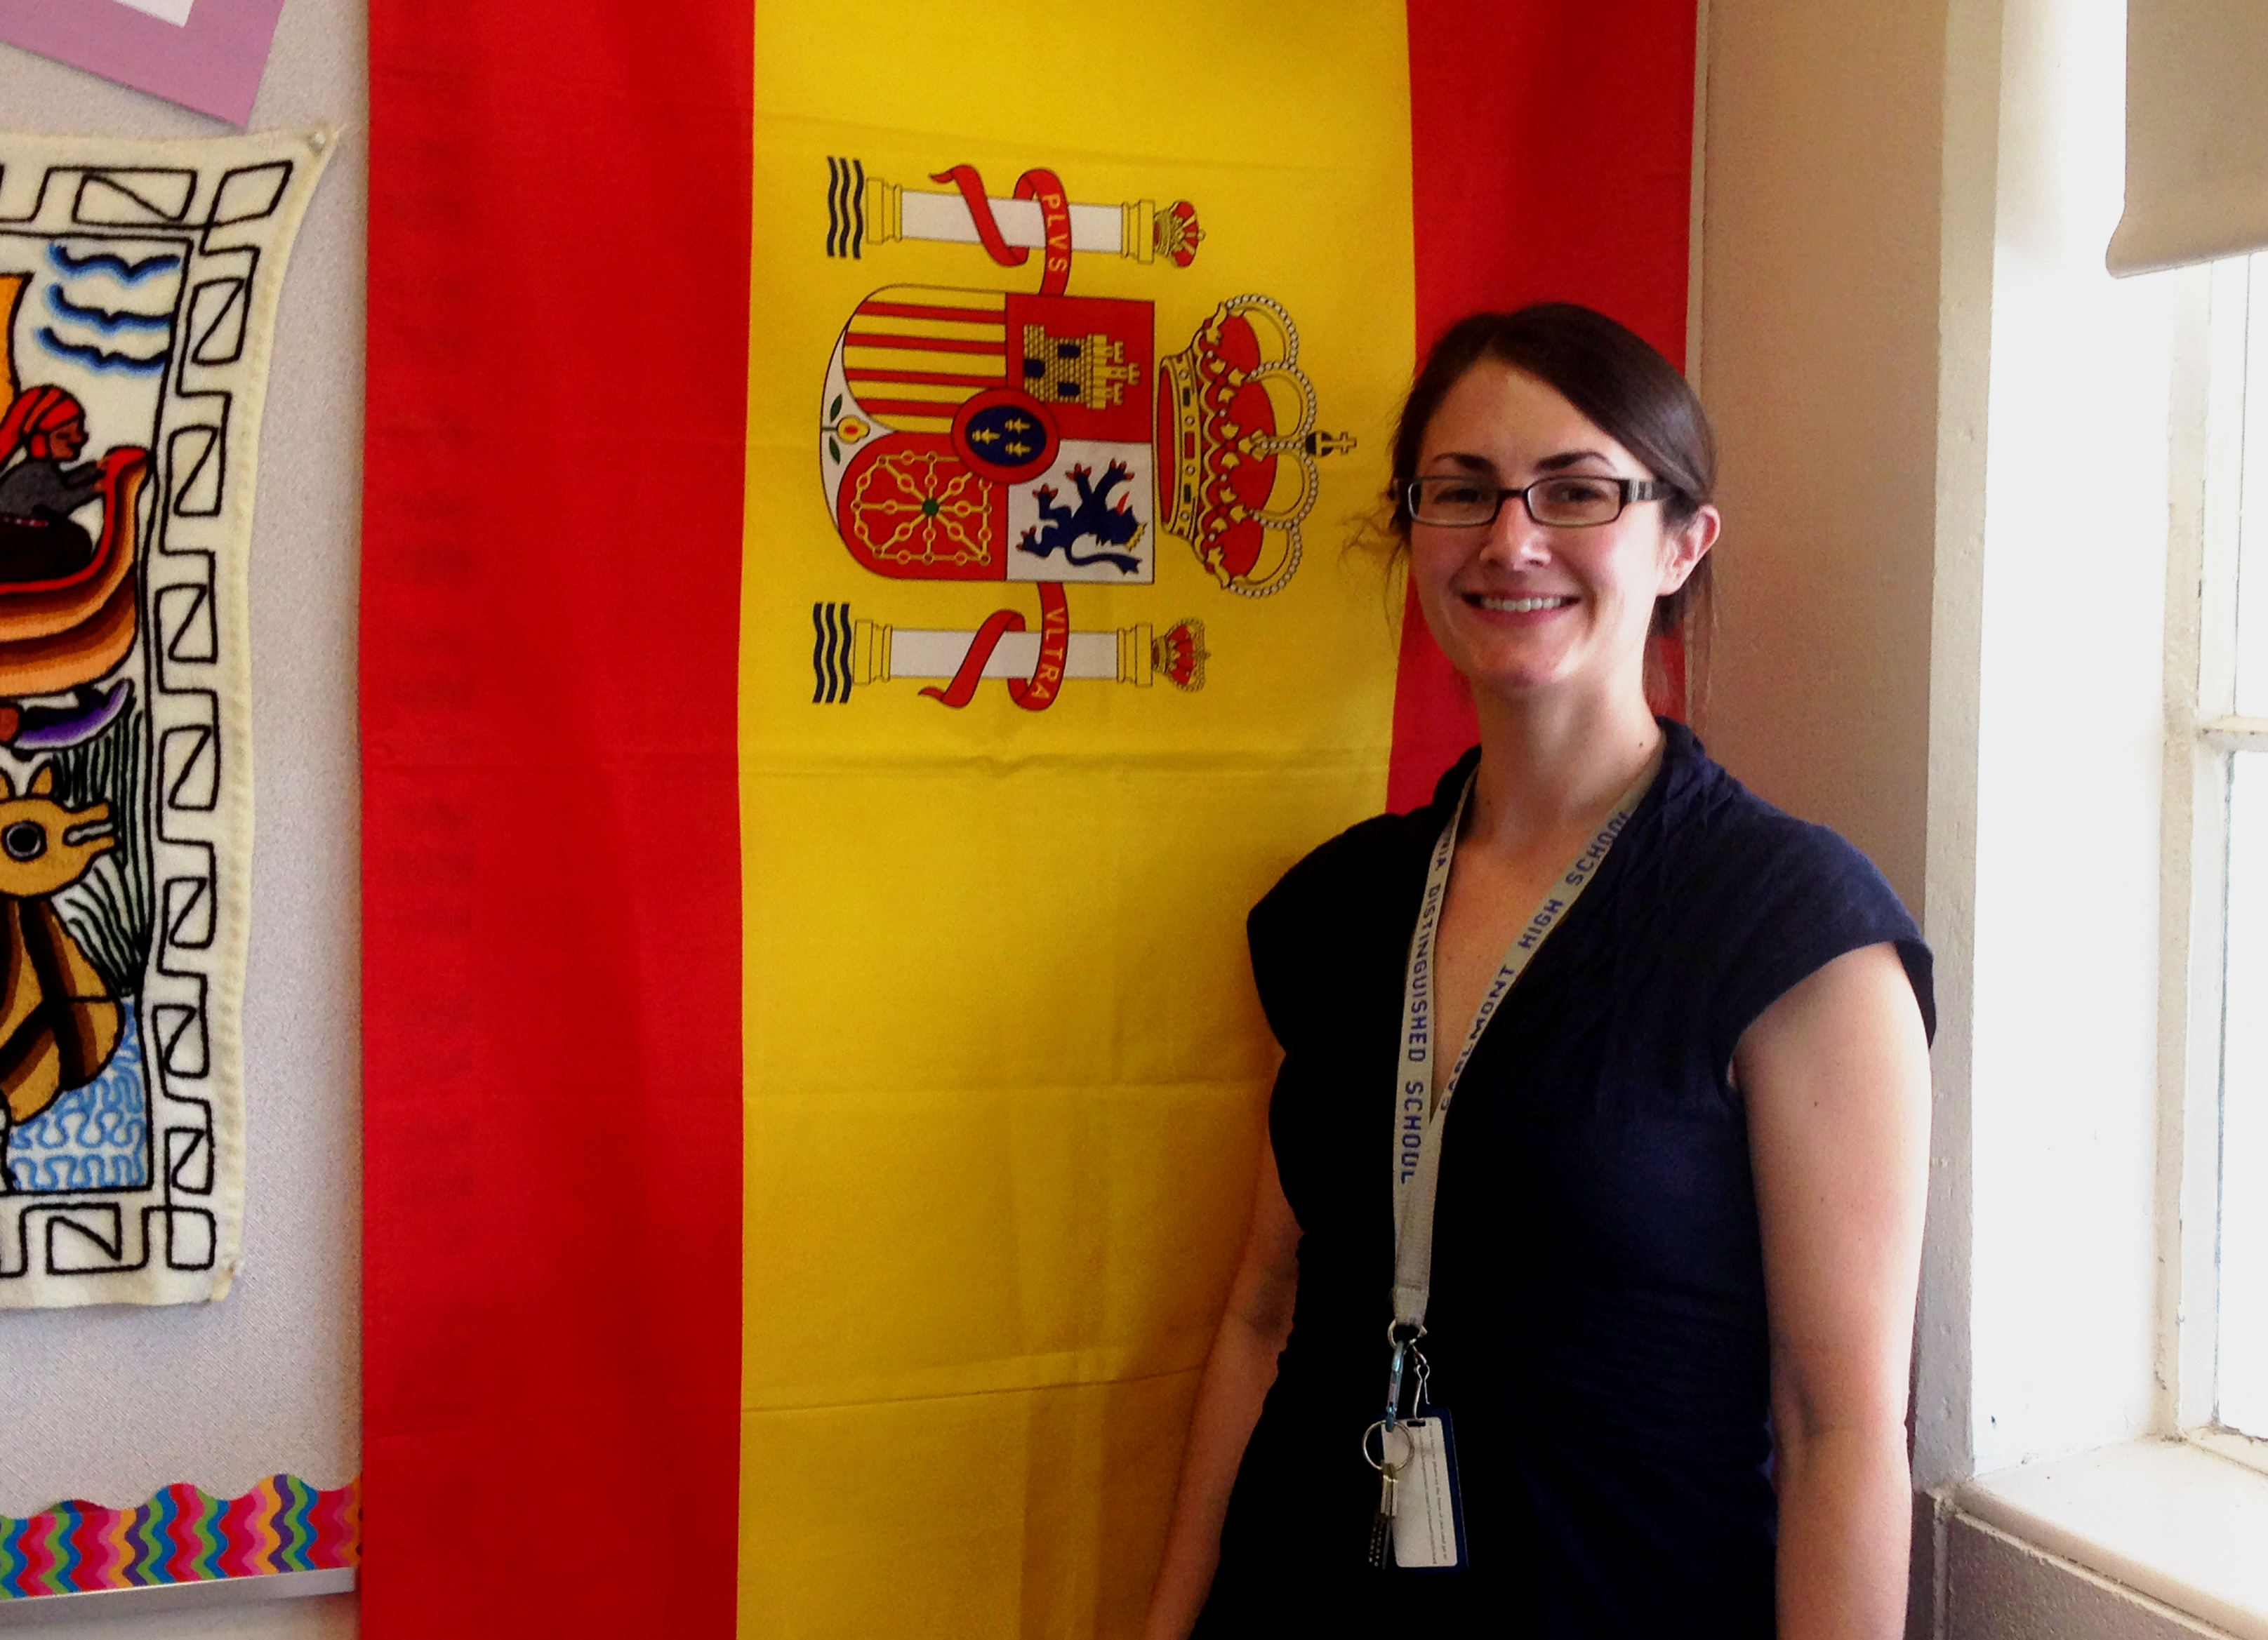 Gatzert has devoted her life to Spanish and wishes to share her passion for it with her students.